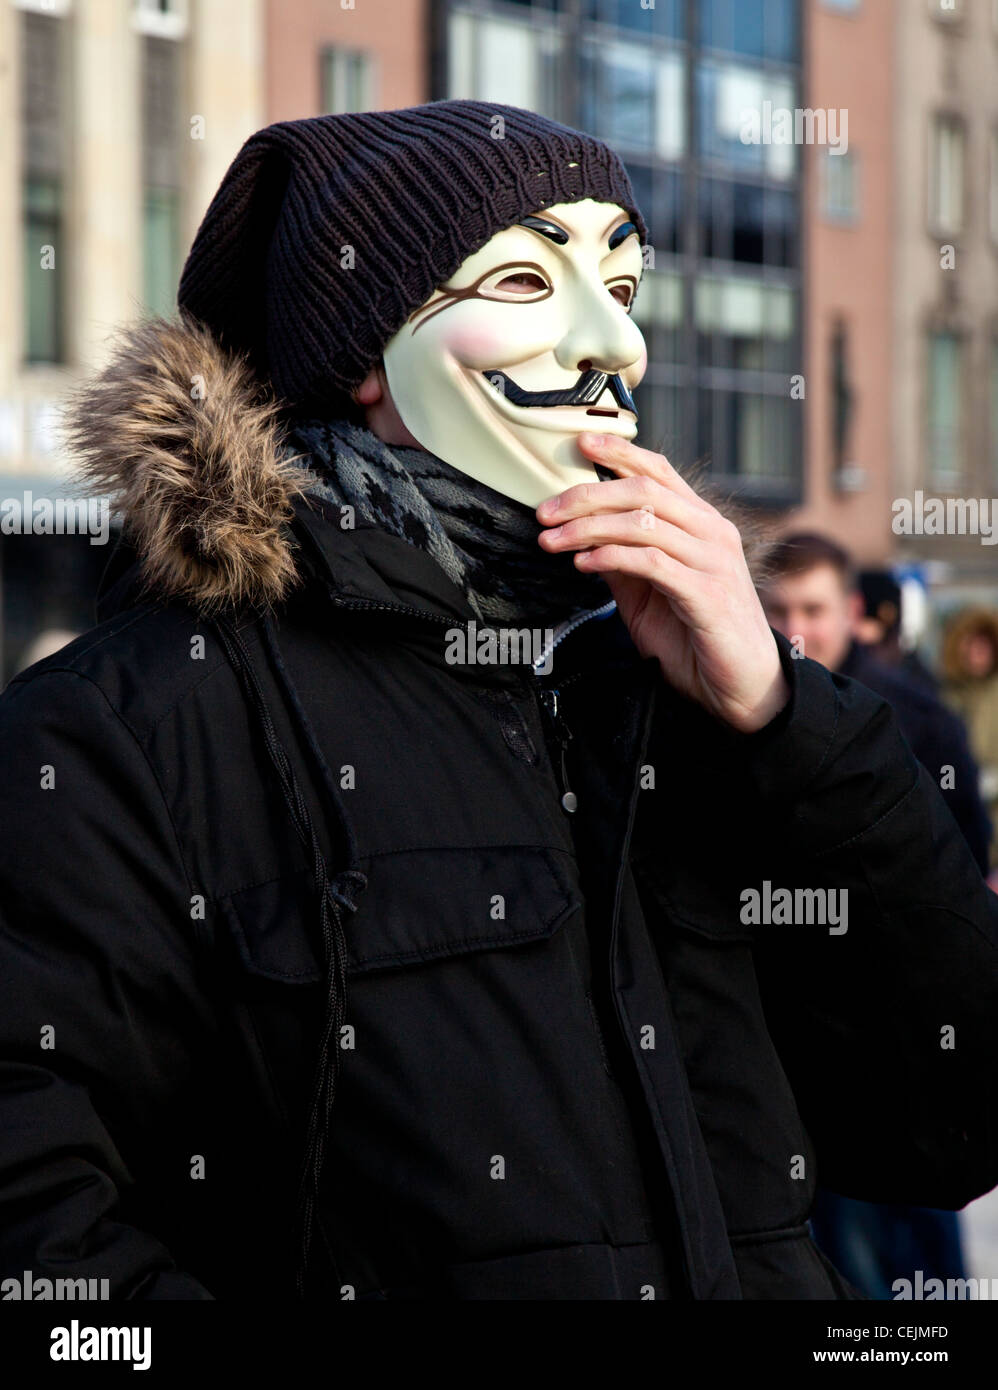 Man with a Guy Fawkes mask at the protest against the Anti-Counterfeiting Trade Agreement in Tallinn, Estonia - Stock Image